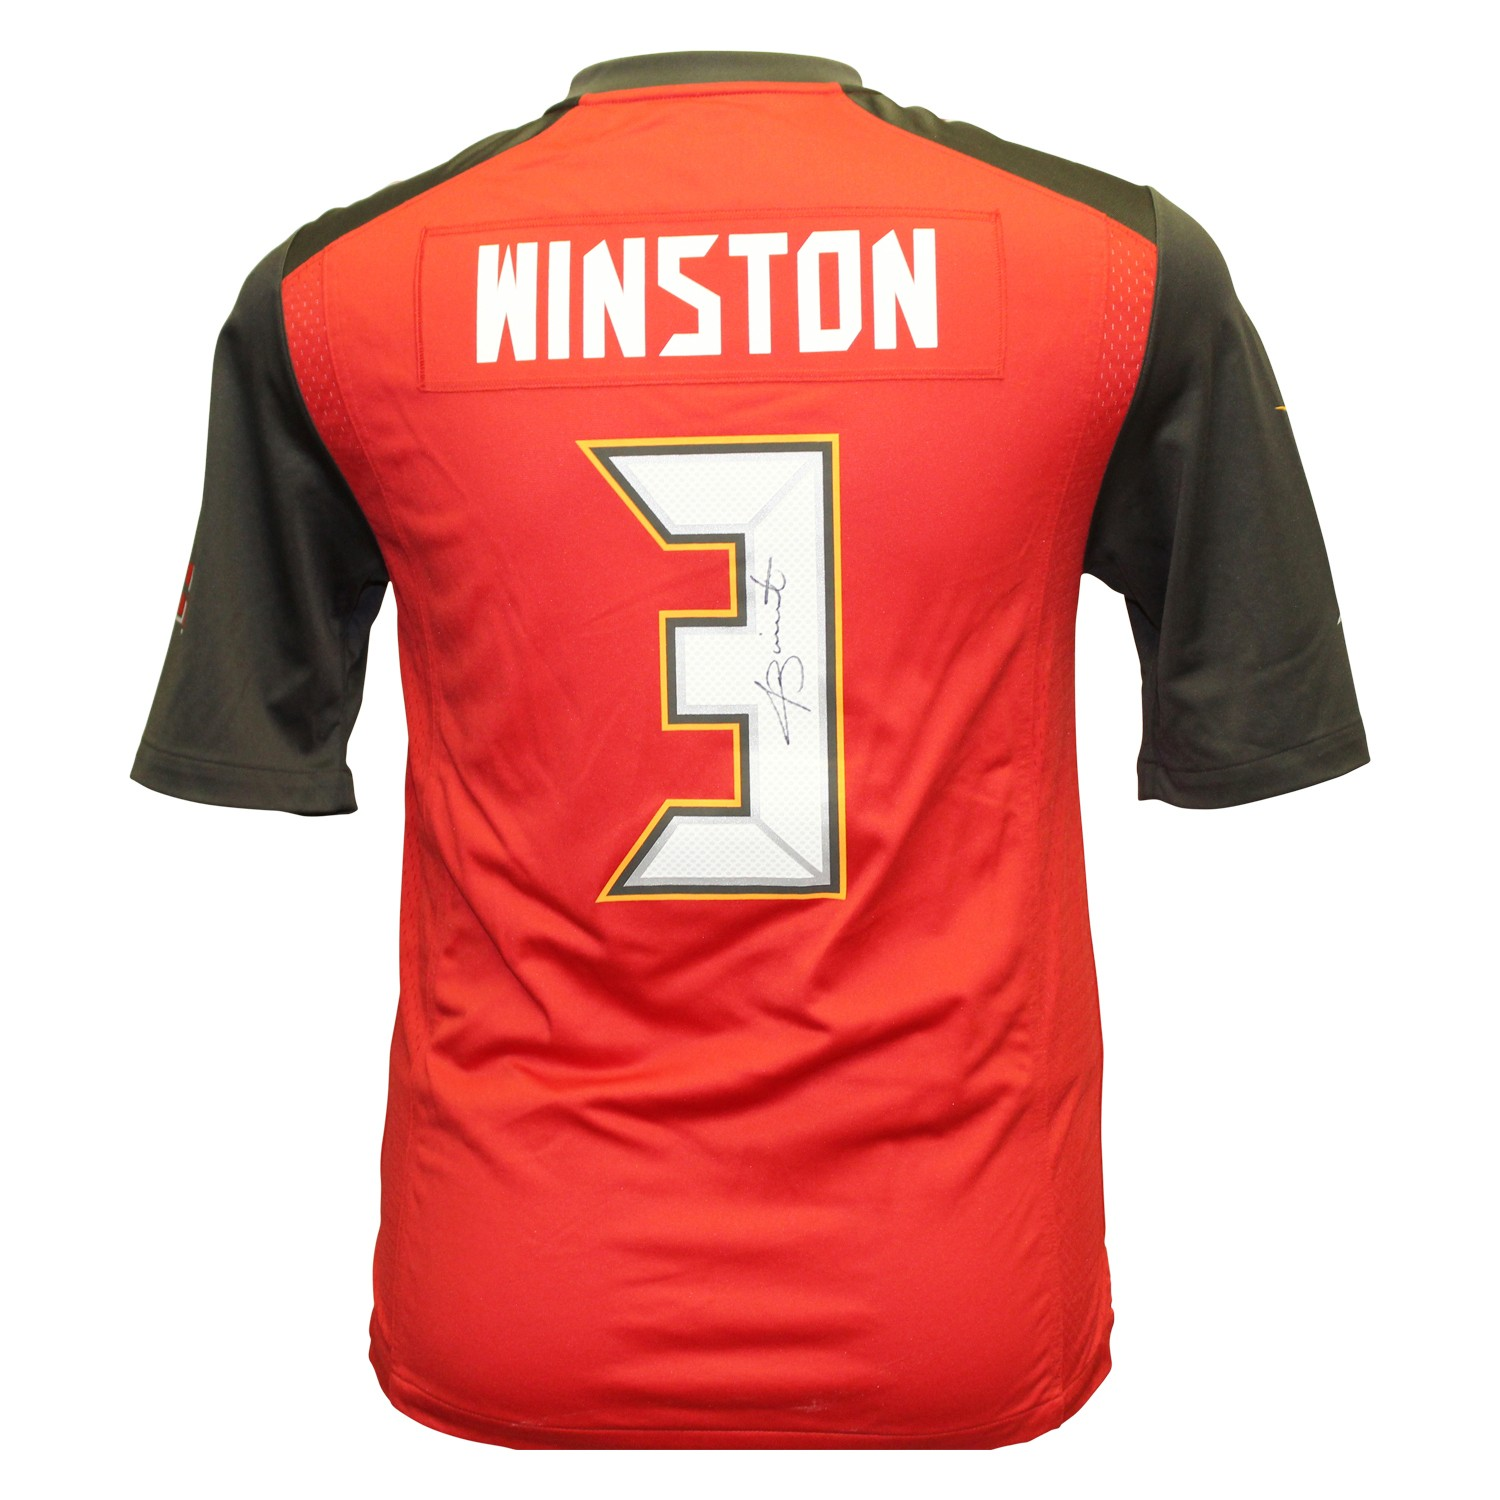 Jameis Winston Autographed Signed Tampa Bay Buccaneers Nike On Field Jersey  - Size L - Certified Authentic b04f9a72f